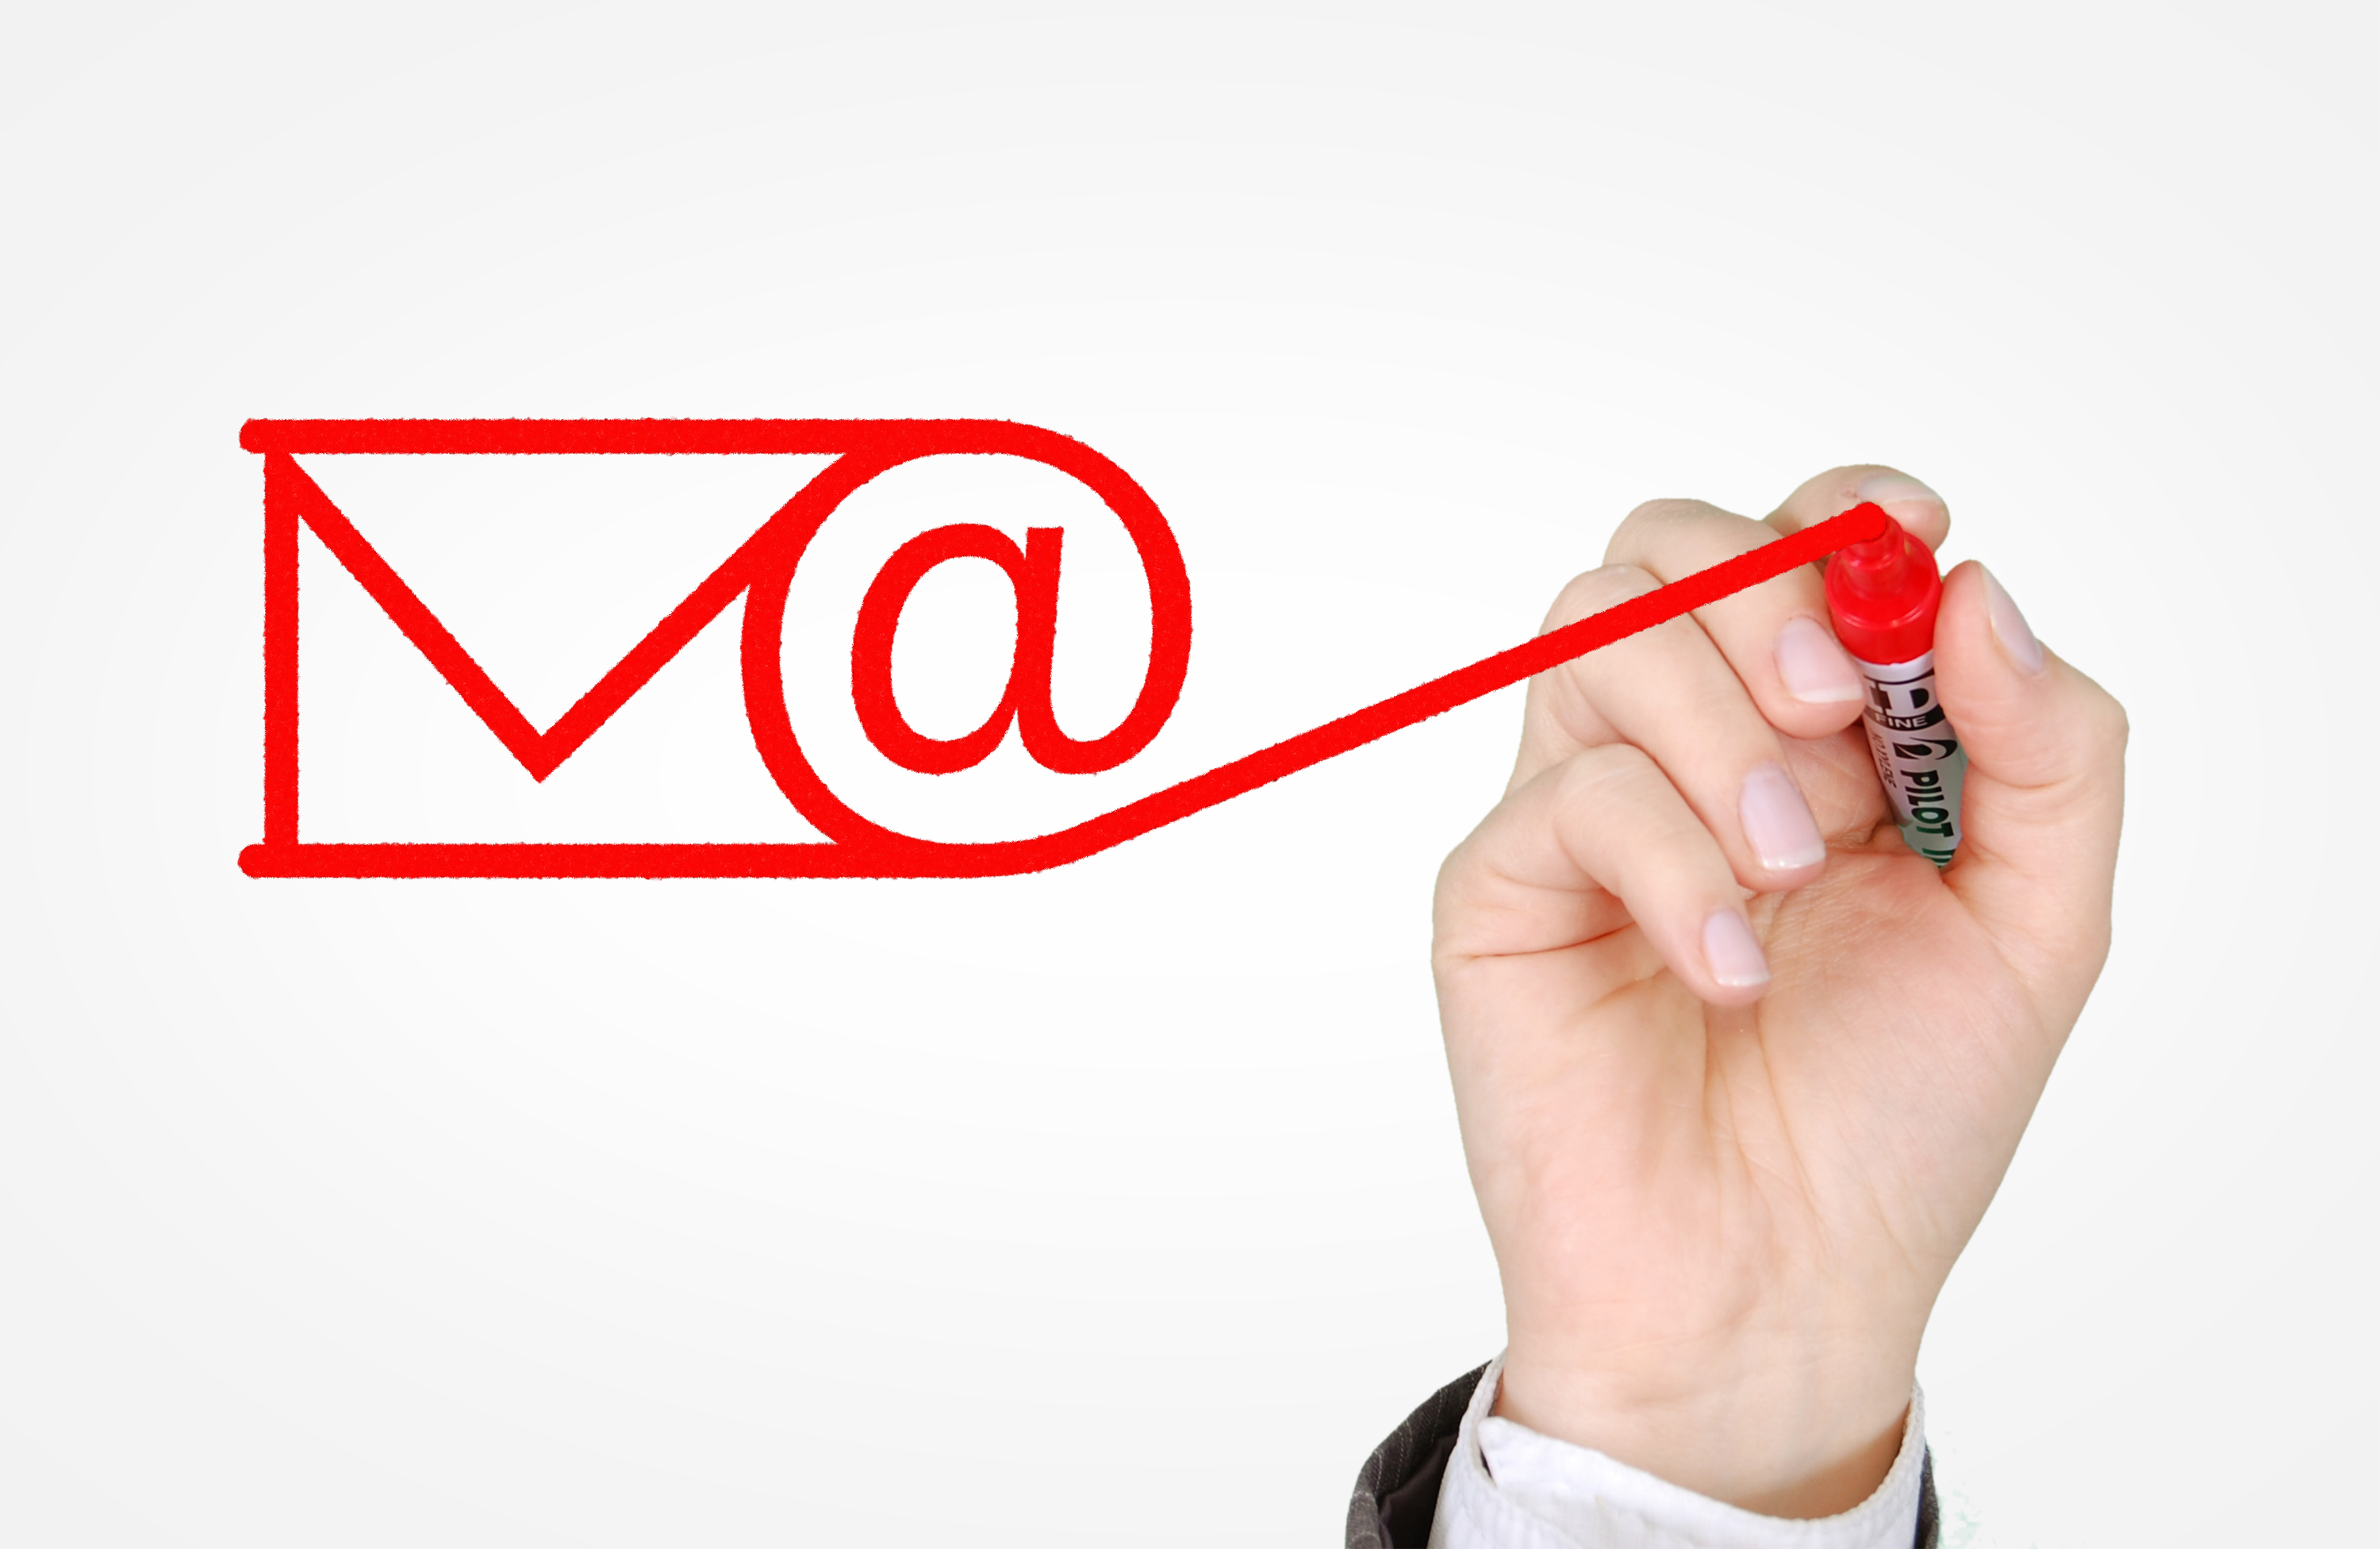 Sending E-mail Concept - Email and Newsletters Campaign, Address, Message, Pen, Opportunity, HQ Photo